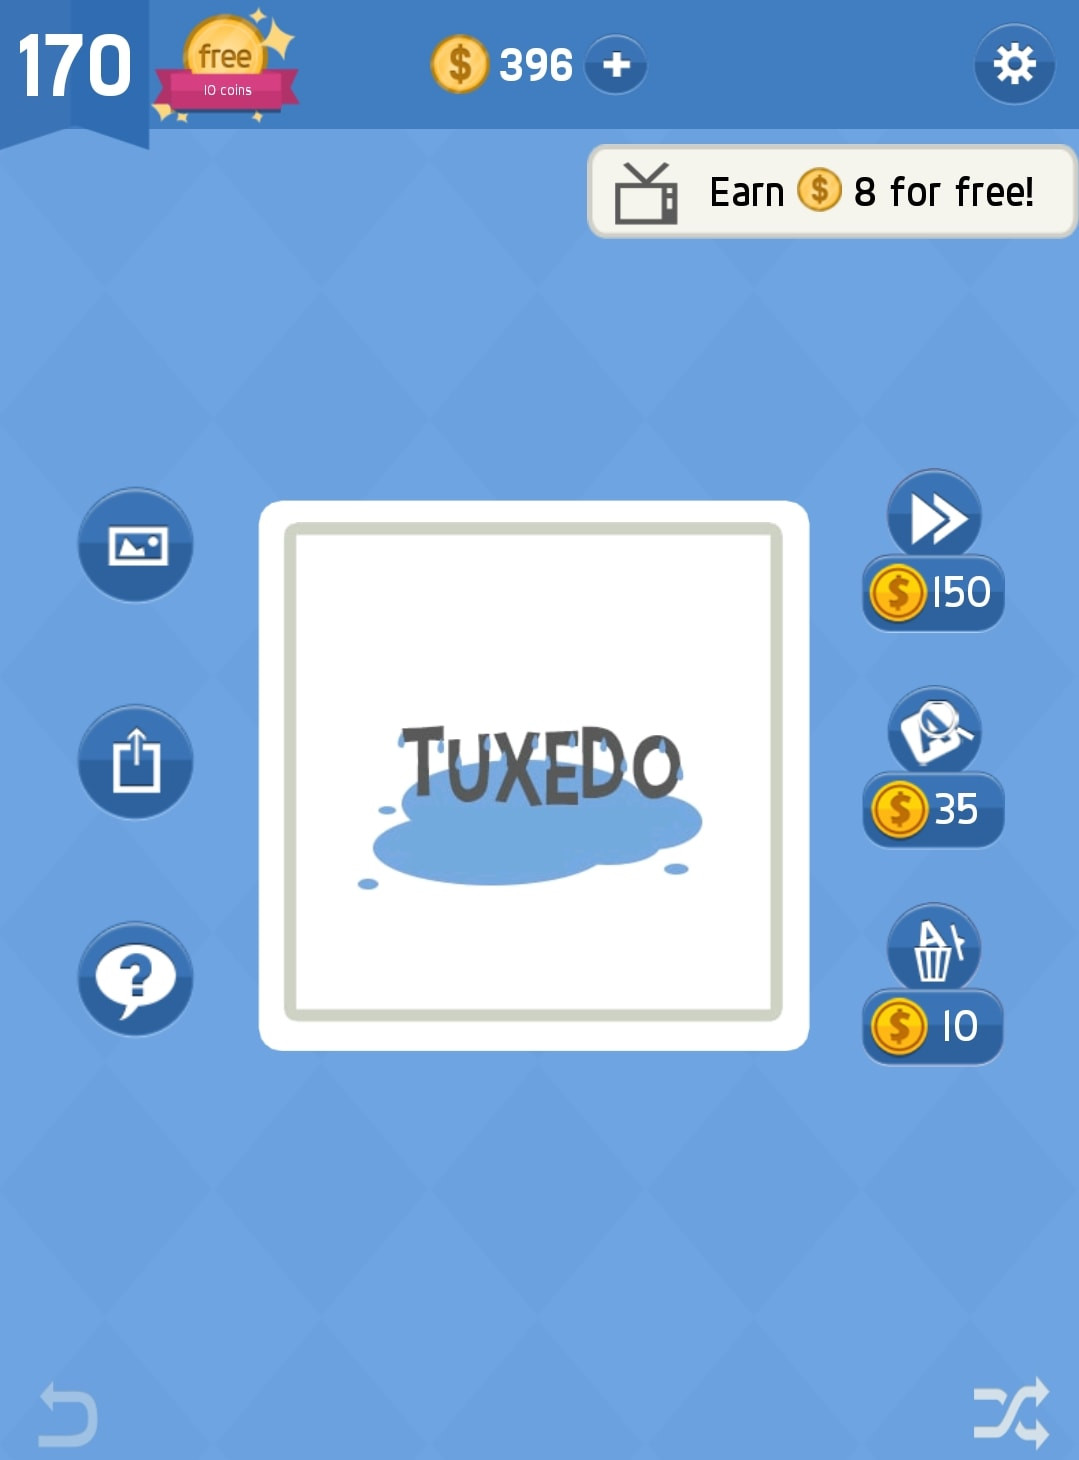 Pack 15 Level 8 in Word Tricky - zilliongamer your game guide